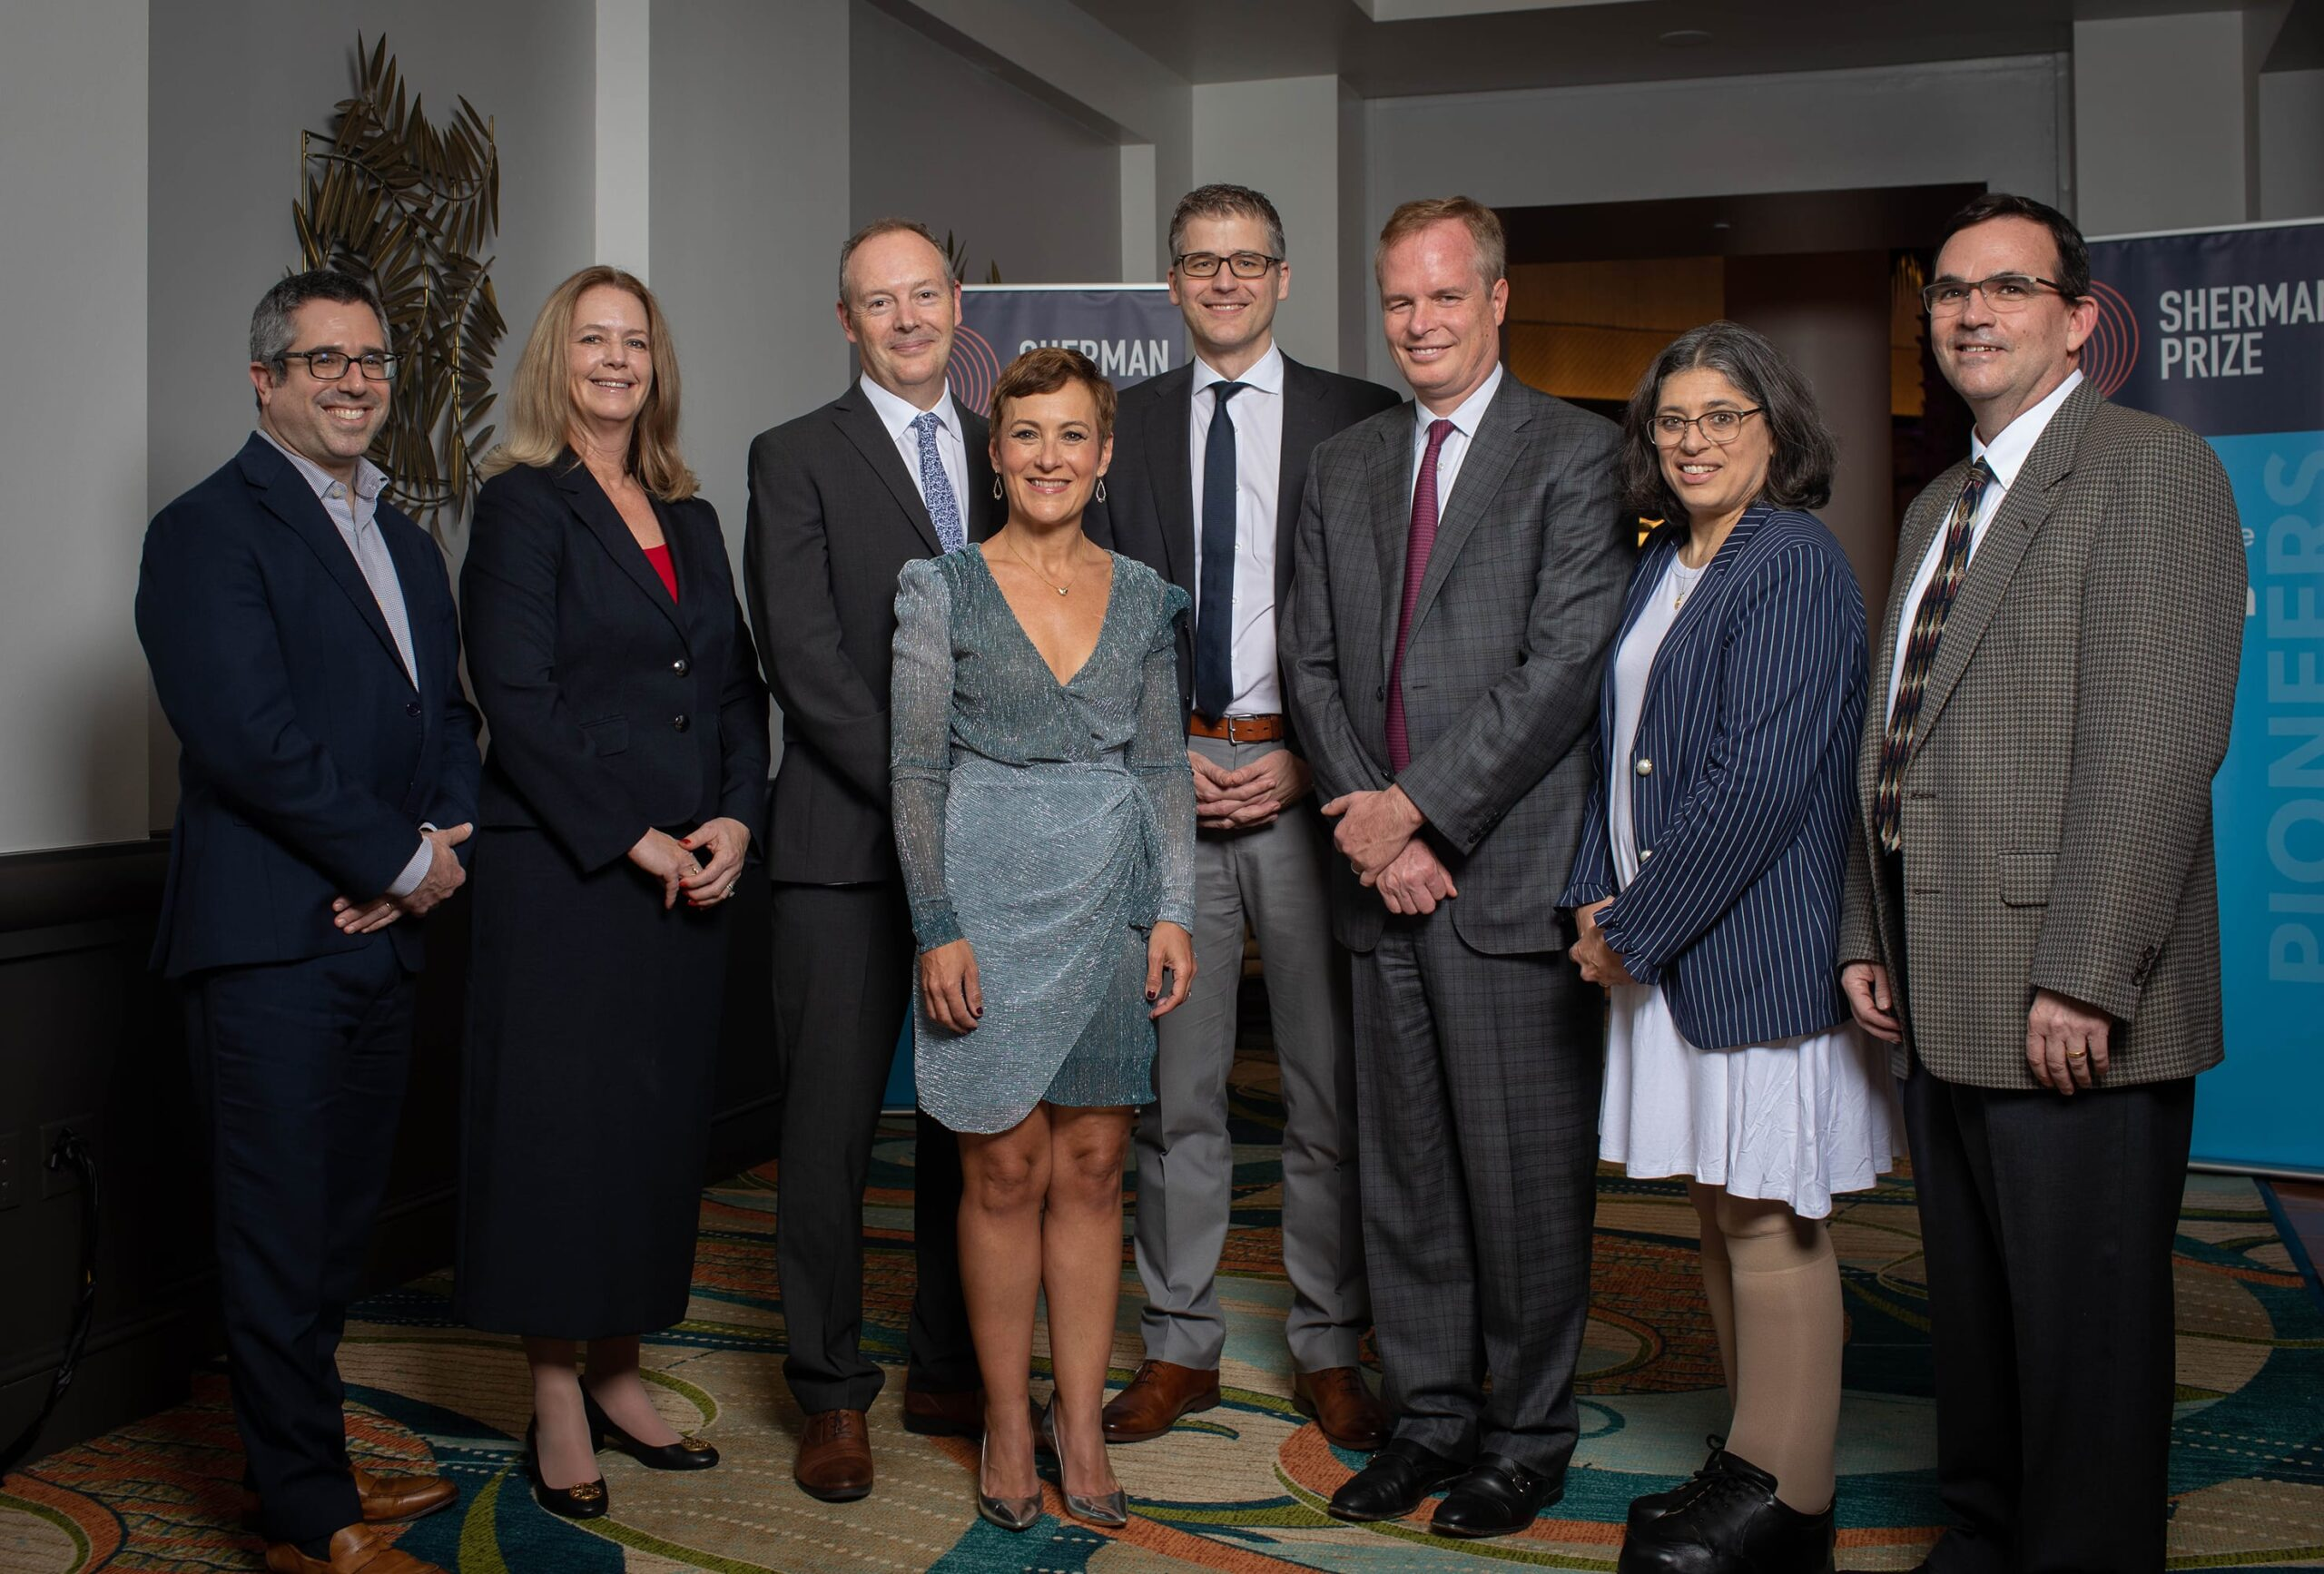 <p>2019 Sherman Prize Recipients and 2019 Selection Committee</p>